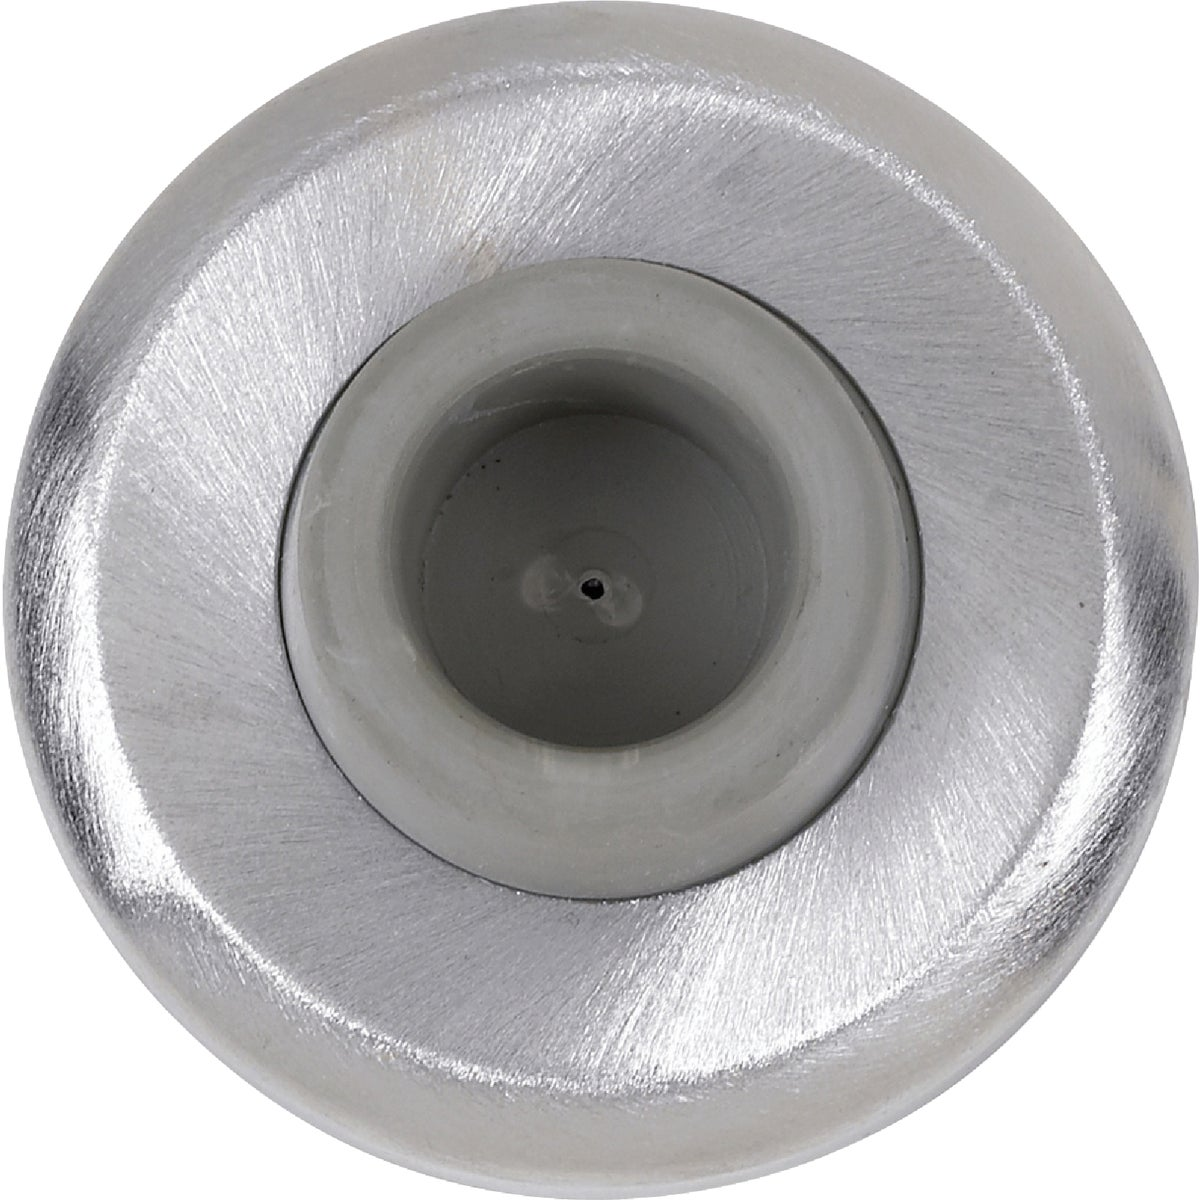 26D CONCAVE WALL STOP - DT100084 by Tell Mfg Inc